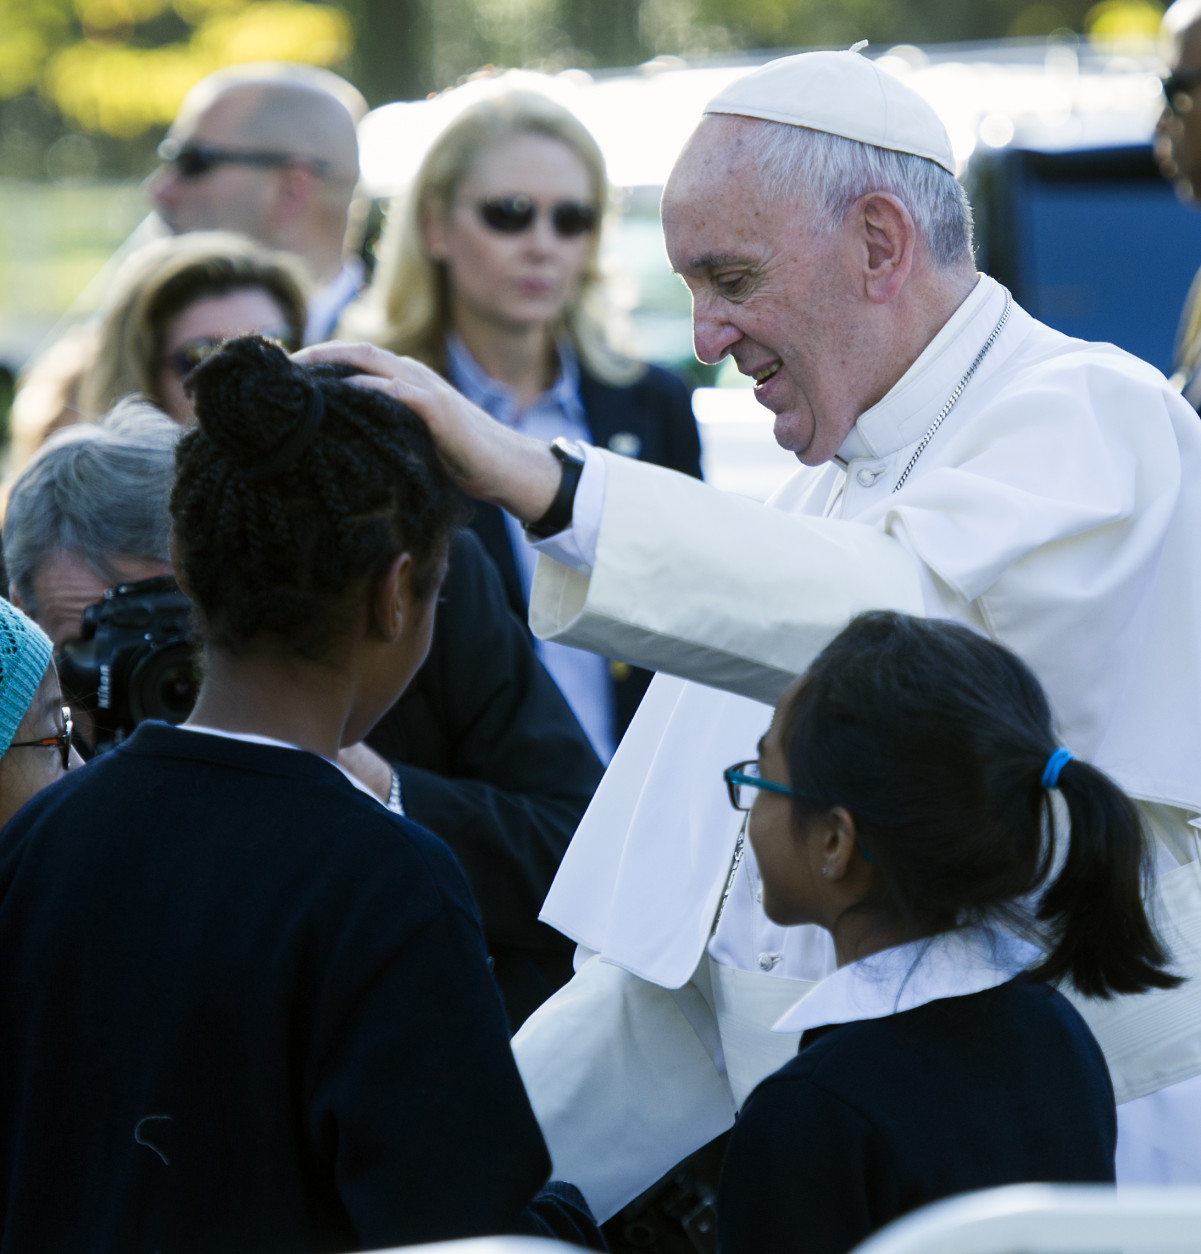 Pope Francis places his hand on the head of a girl as he greets school children prior to departing the Apostolic Nunciature, the Vatican's diplomatic mission in the heart of Washington, Wednesday, Sept. 23, 2015. Pope Francis will visit the White House, becoming only the third pope to visit the White House.  (AP Photo/Cliff Owen)